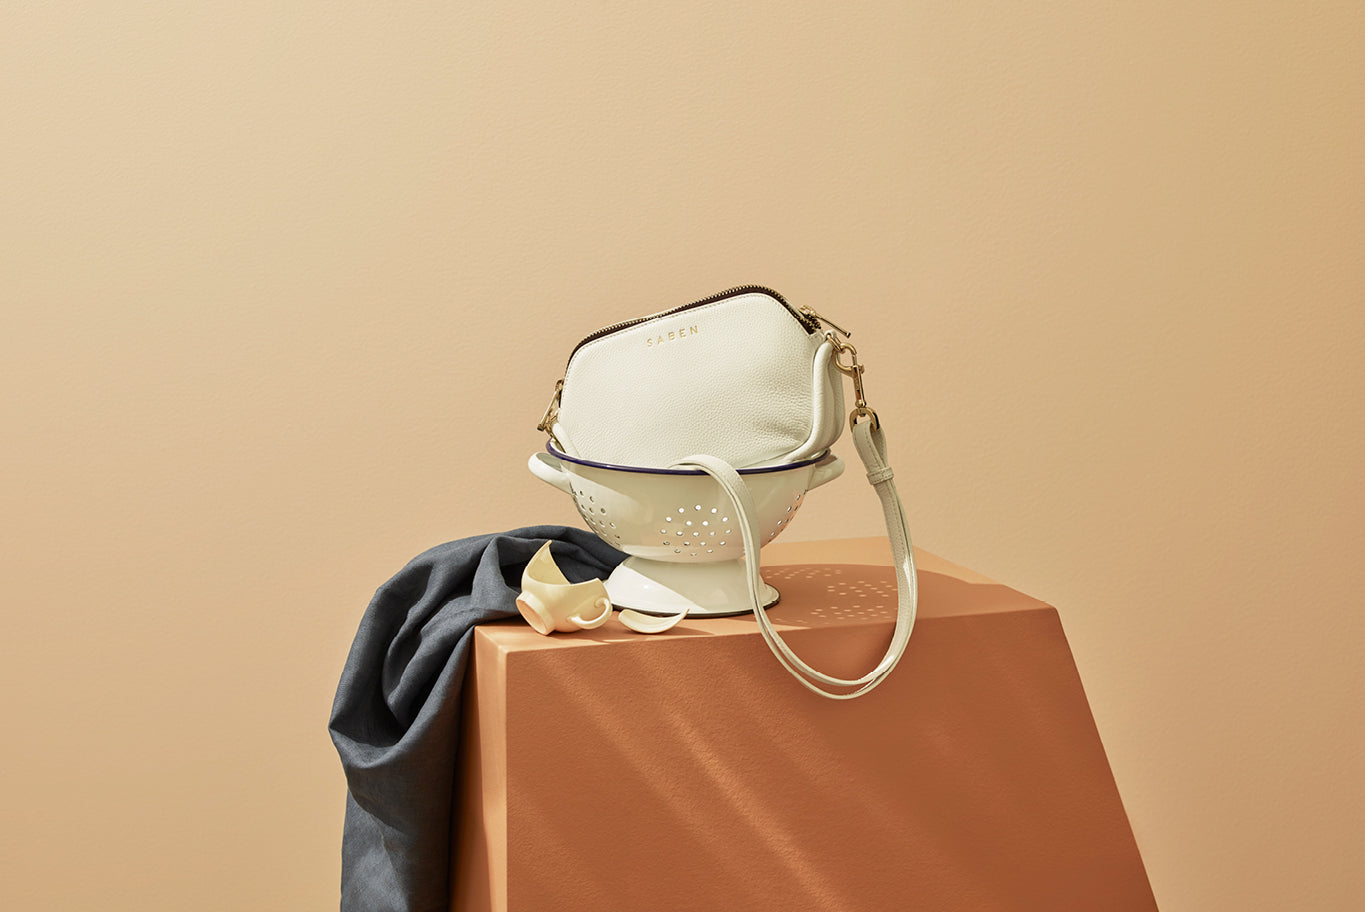 Saben SS20 Vessel collection Odile handbag white styled by karlya smith photographed by belinda merrie